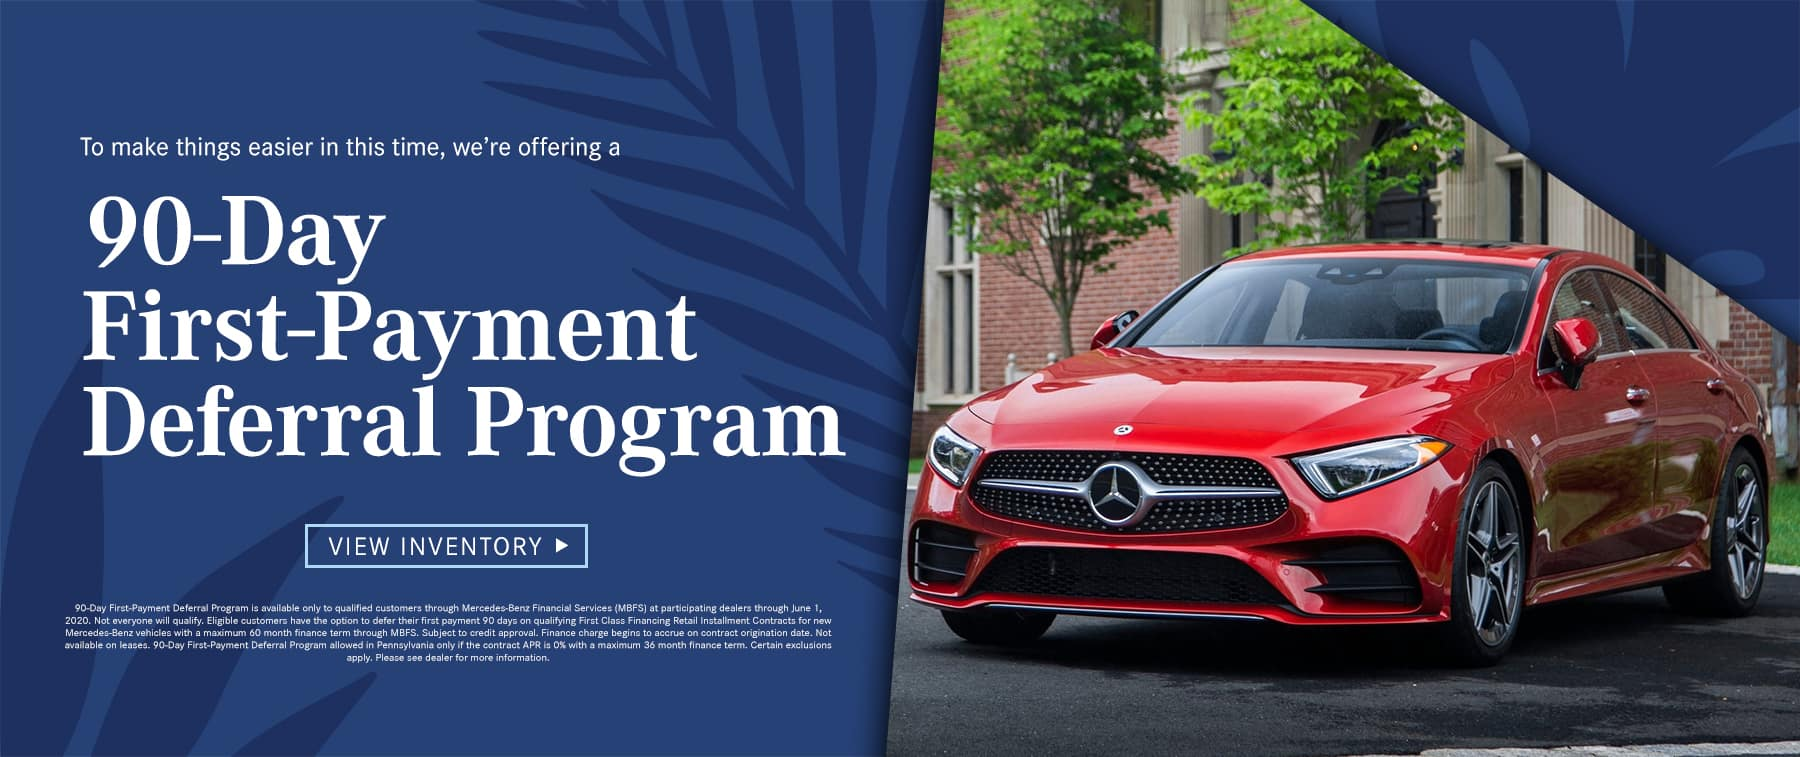 90-Day First-Payment Deferral Program